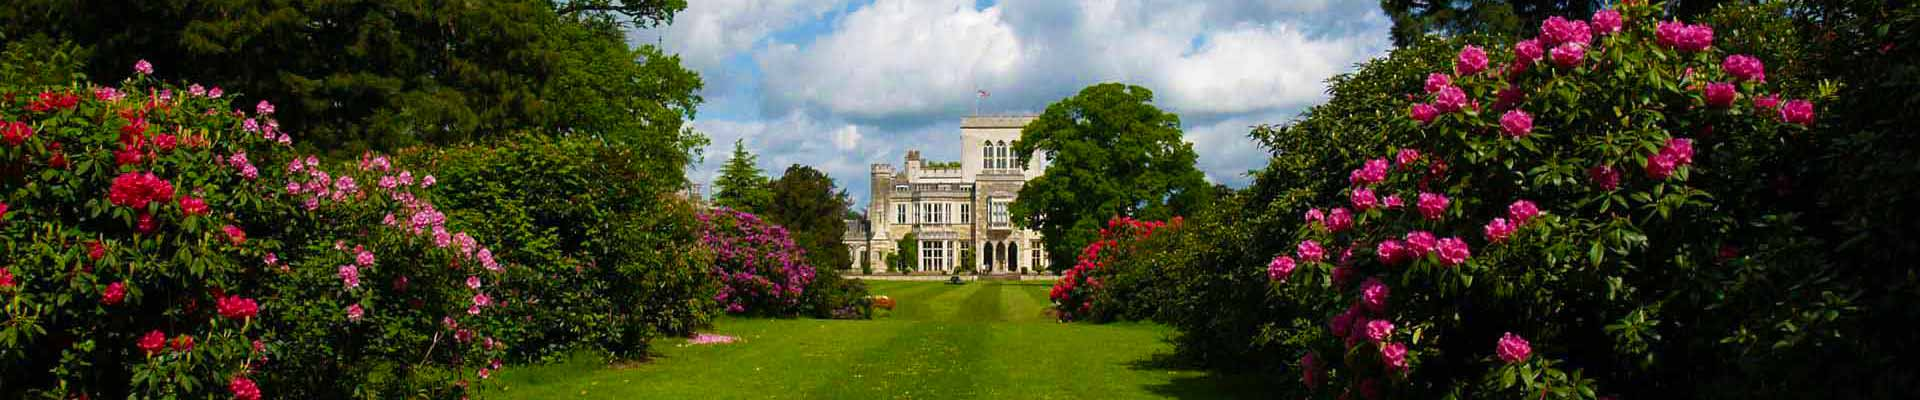 Photo of Ashridge House gardens